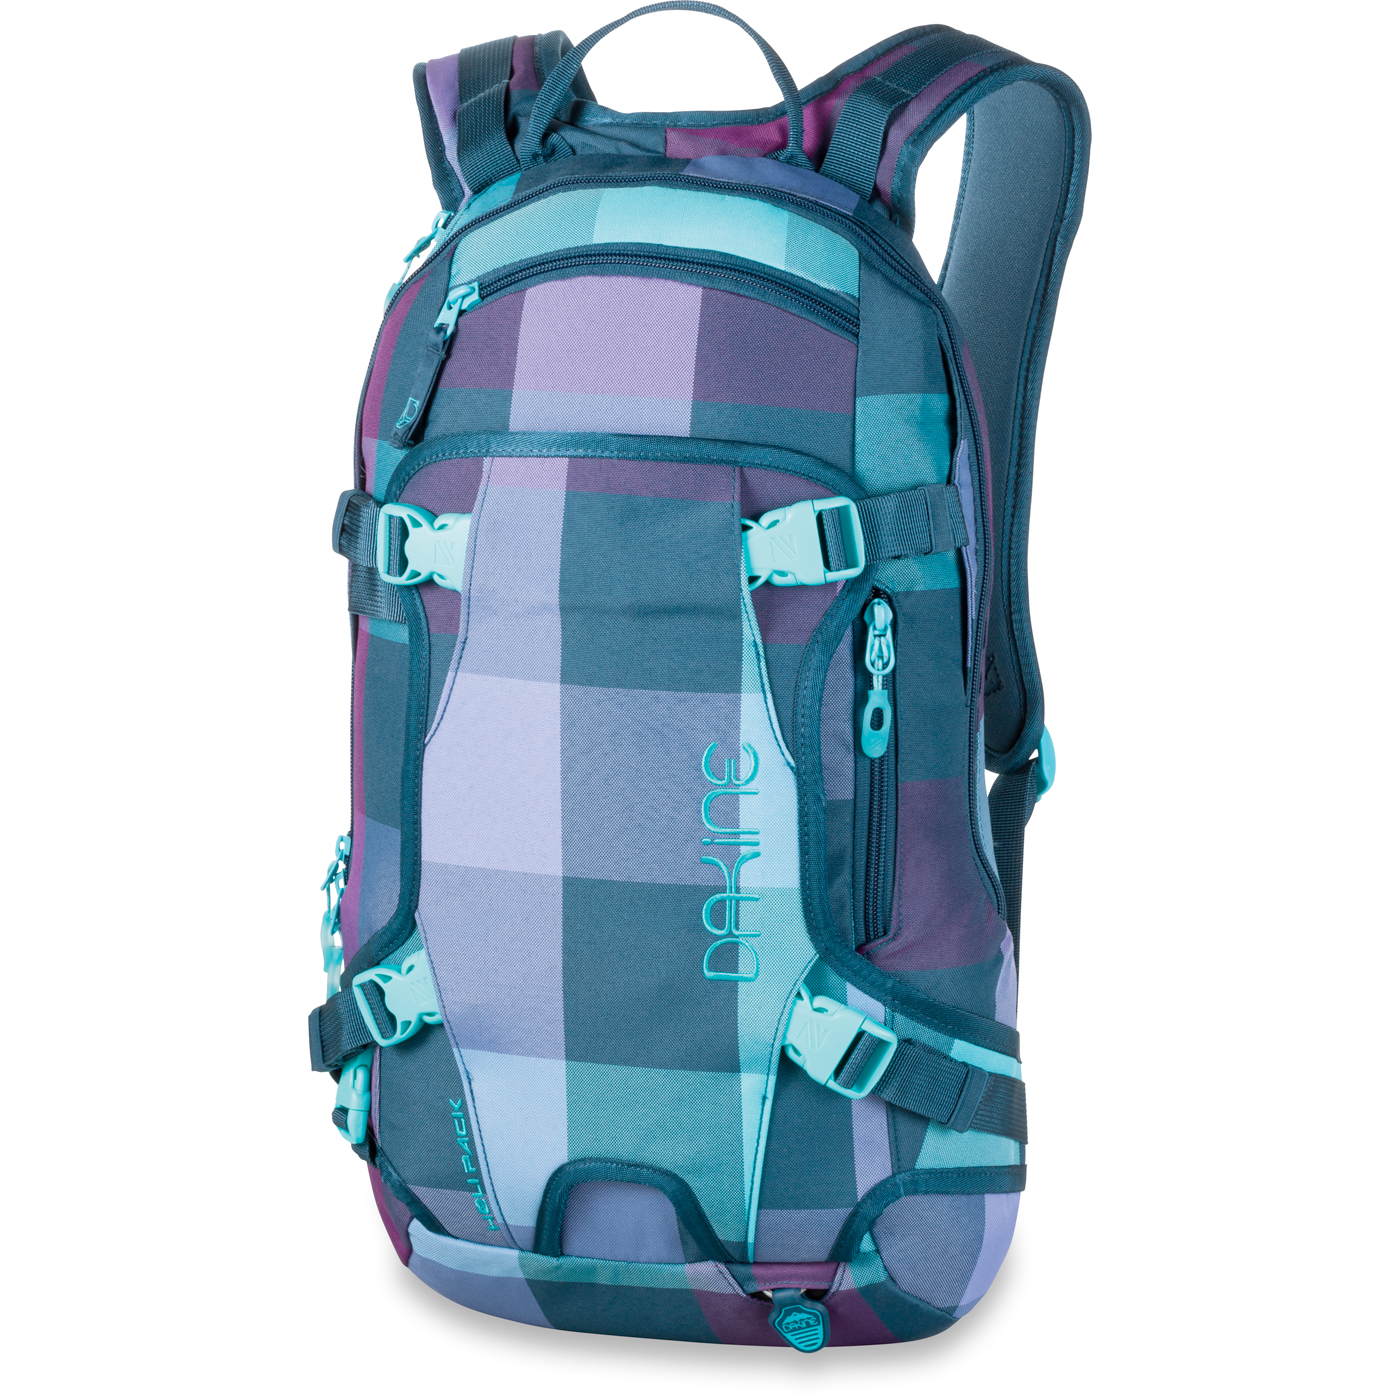 dakine heli 11l backpack with 231337922904 on 2643 Dakine Ski Backpacks additionally 231073699337 together with Sac  C3 A0 Dos Dakine 935401641691 furthermore Dakine Heli Pack 11l Kingston furthermore Dakine Heli Pack 12l Peat Camo.